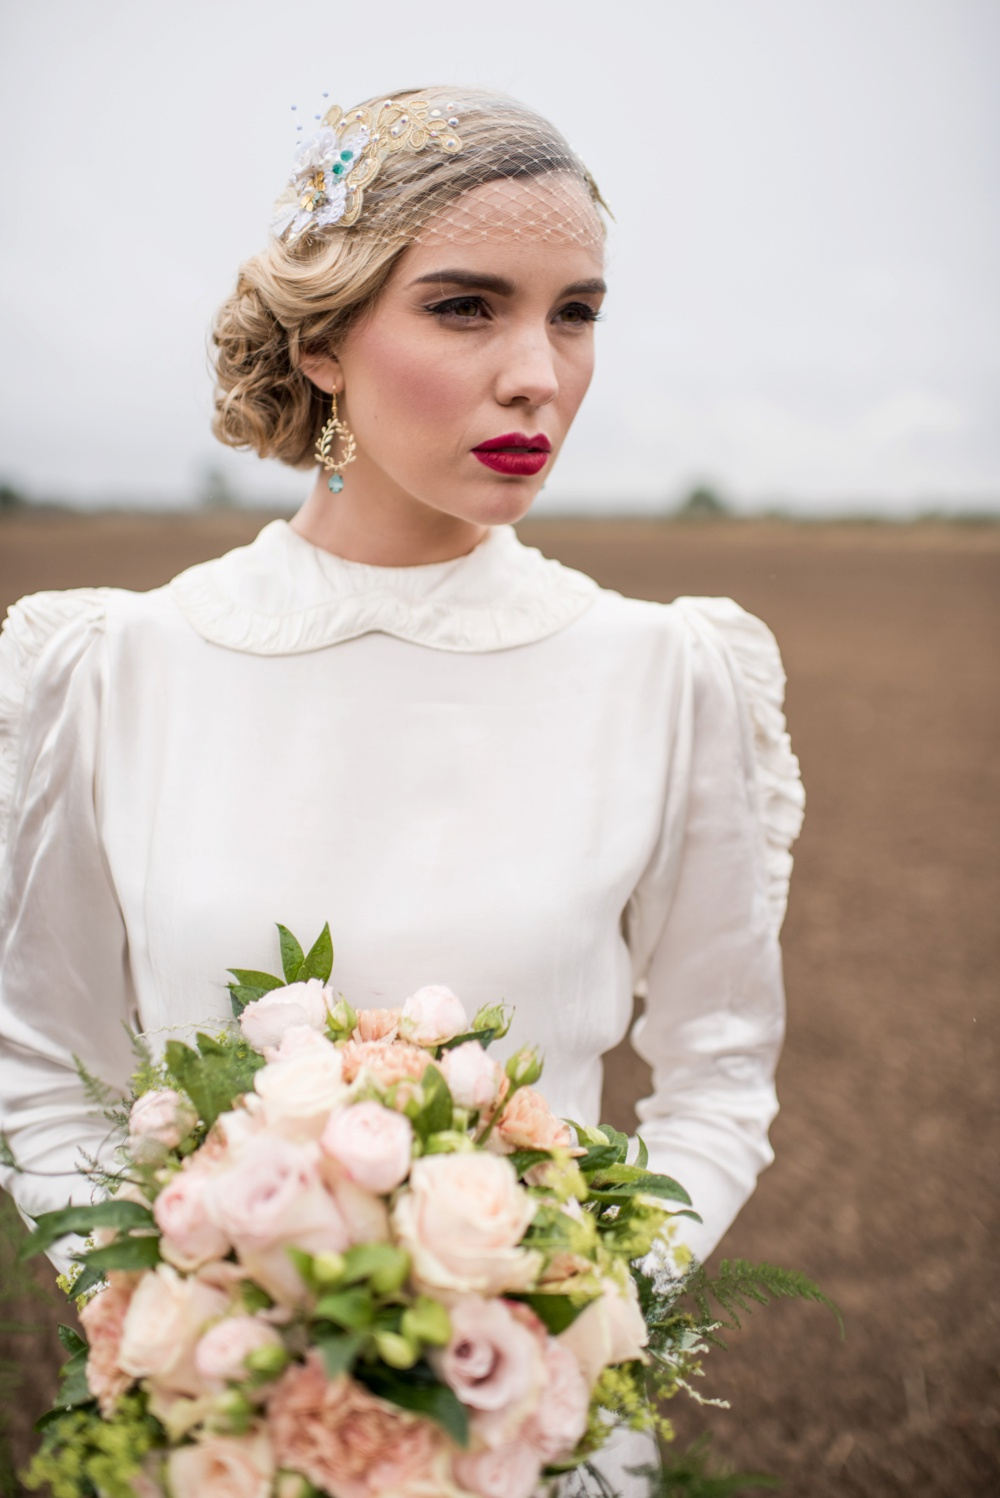 fine-art-wedding-photographer-jane-beadnell-photography-bridal-accessories-bespoke-vintage-castle-64